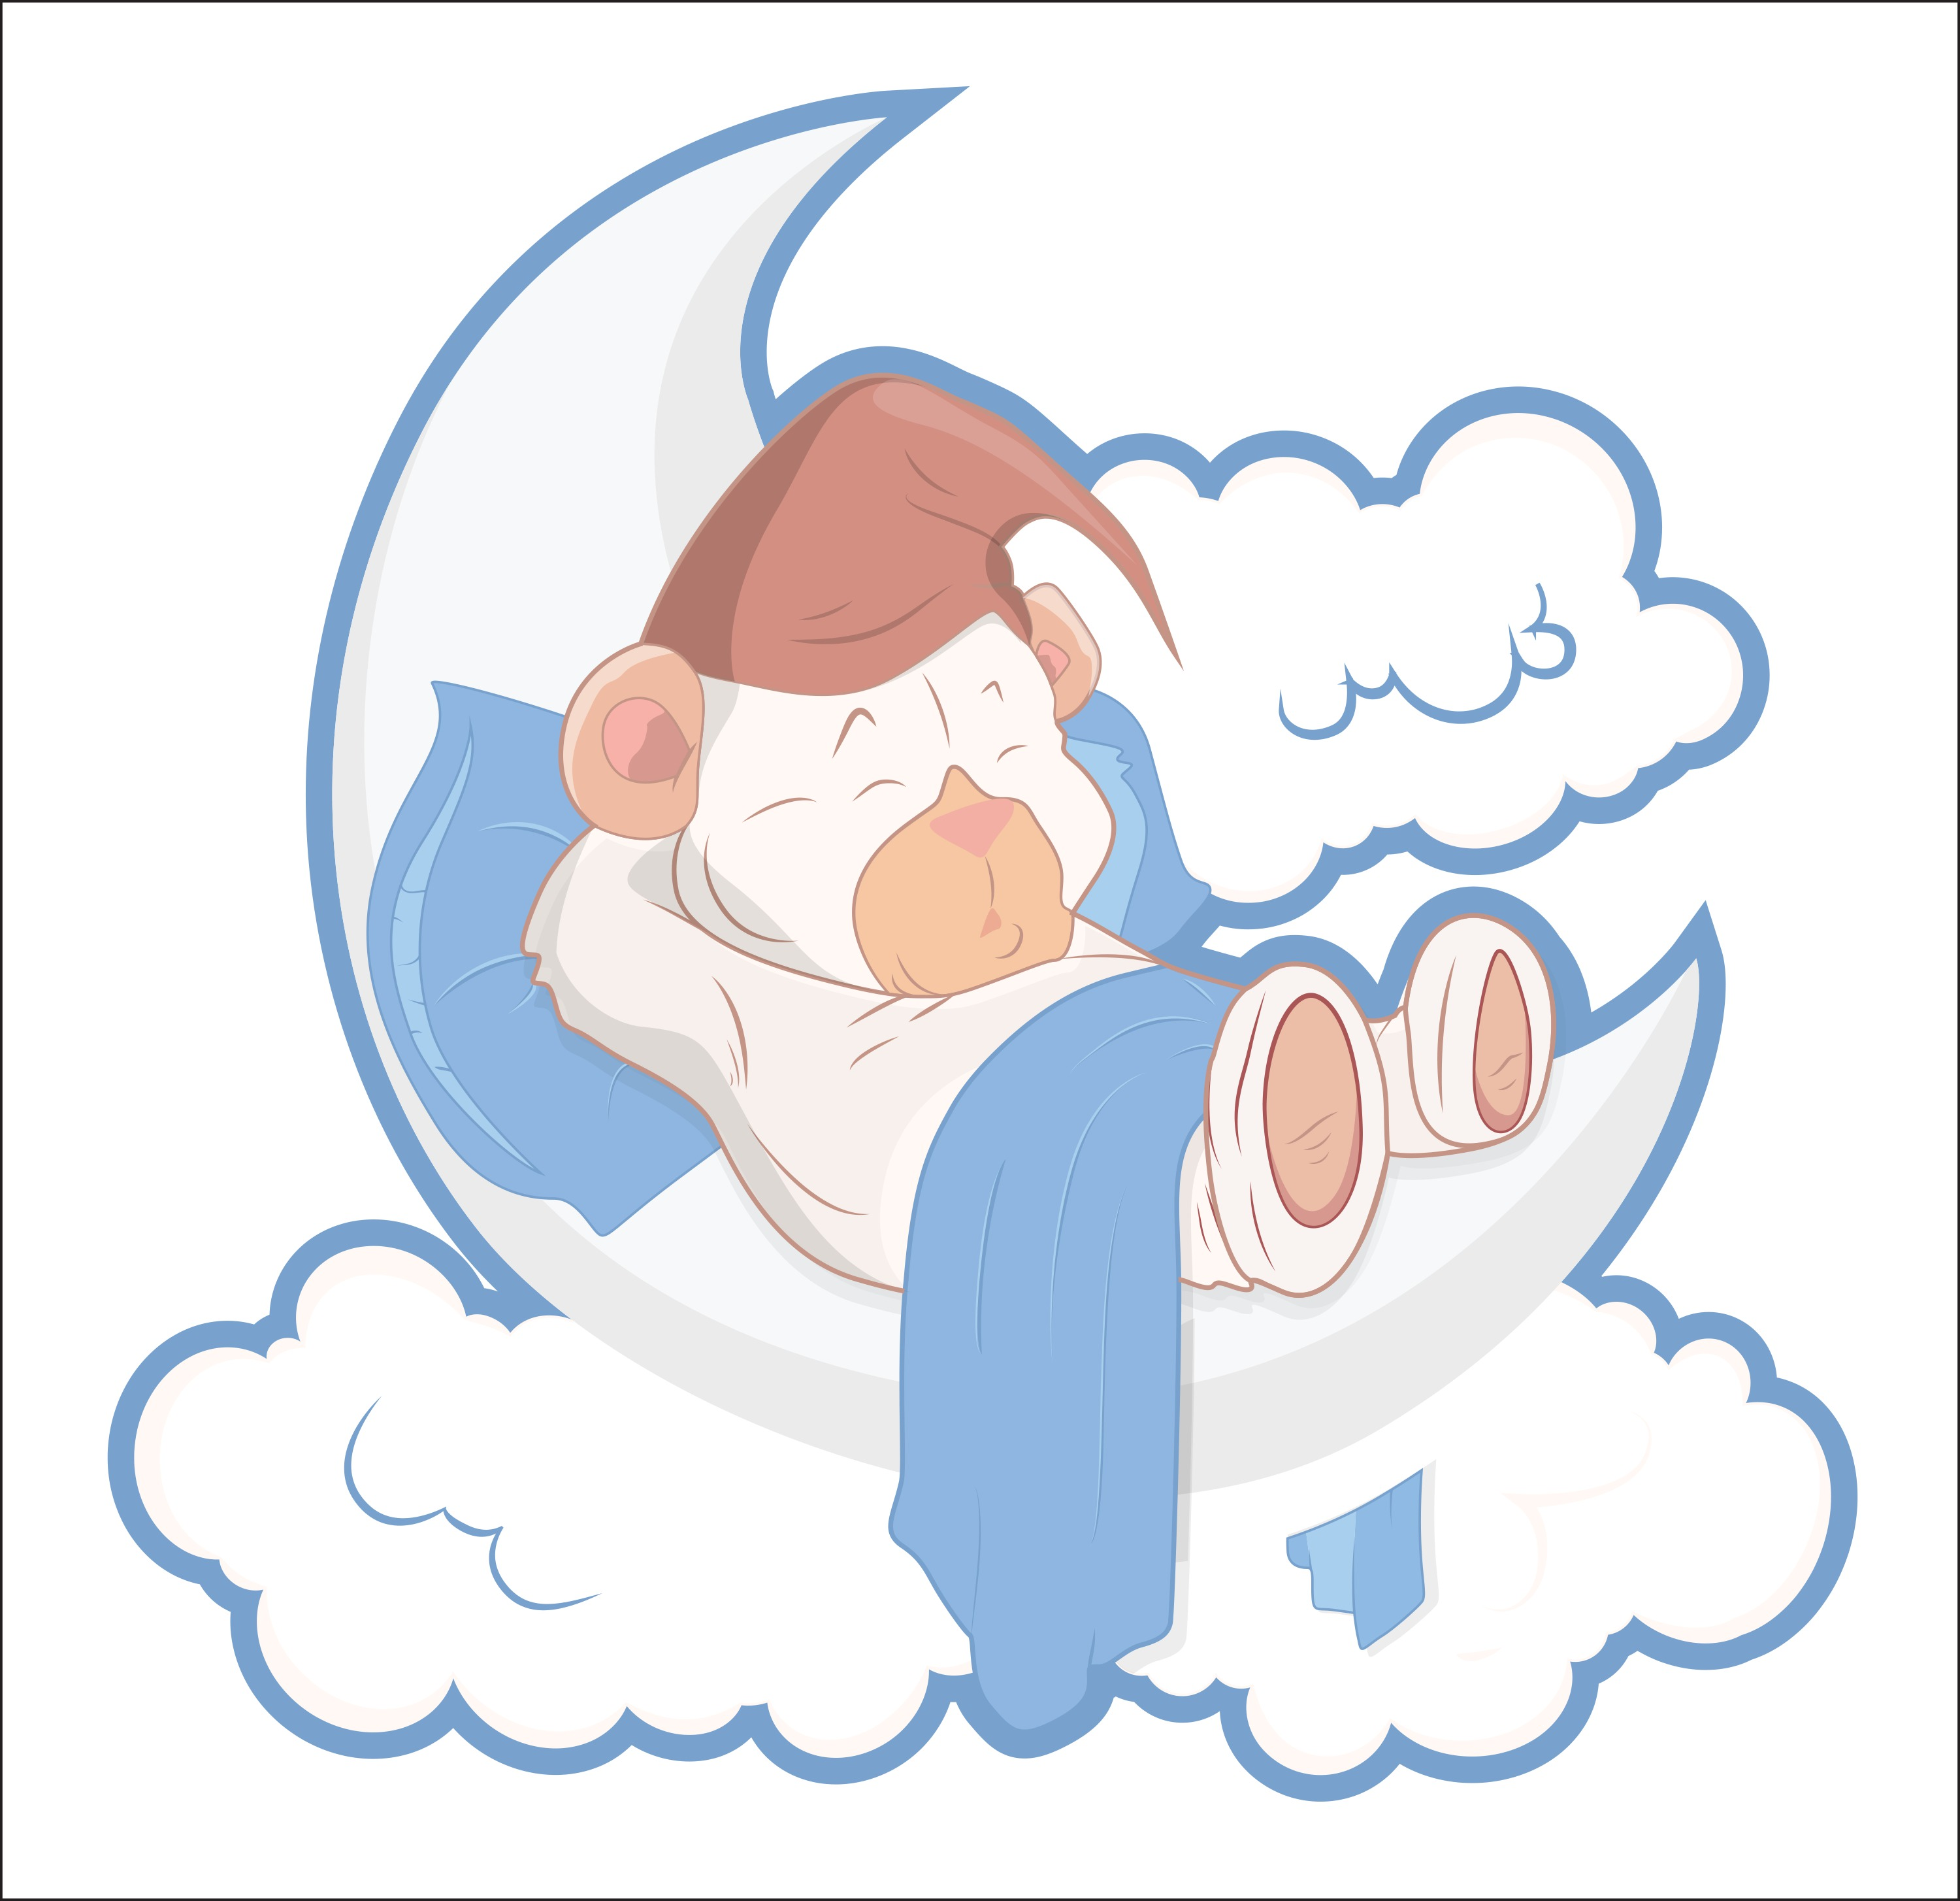 Naptime clipart toddler sleep. What rules and procedures